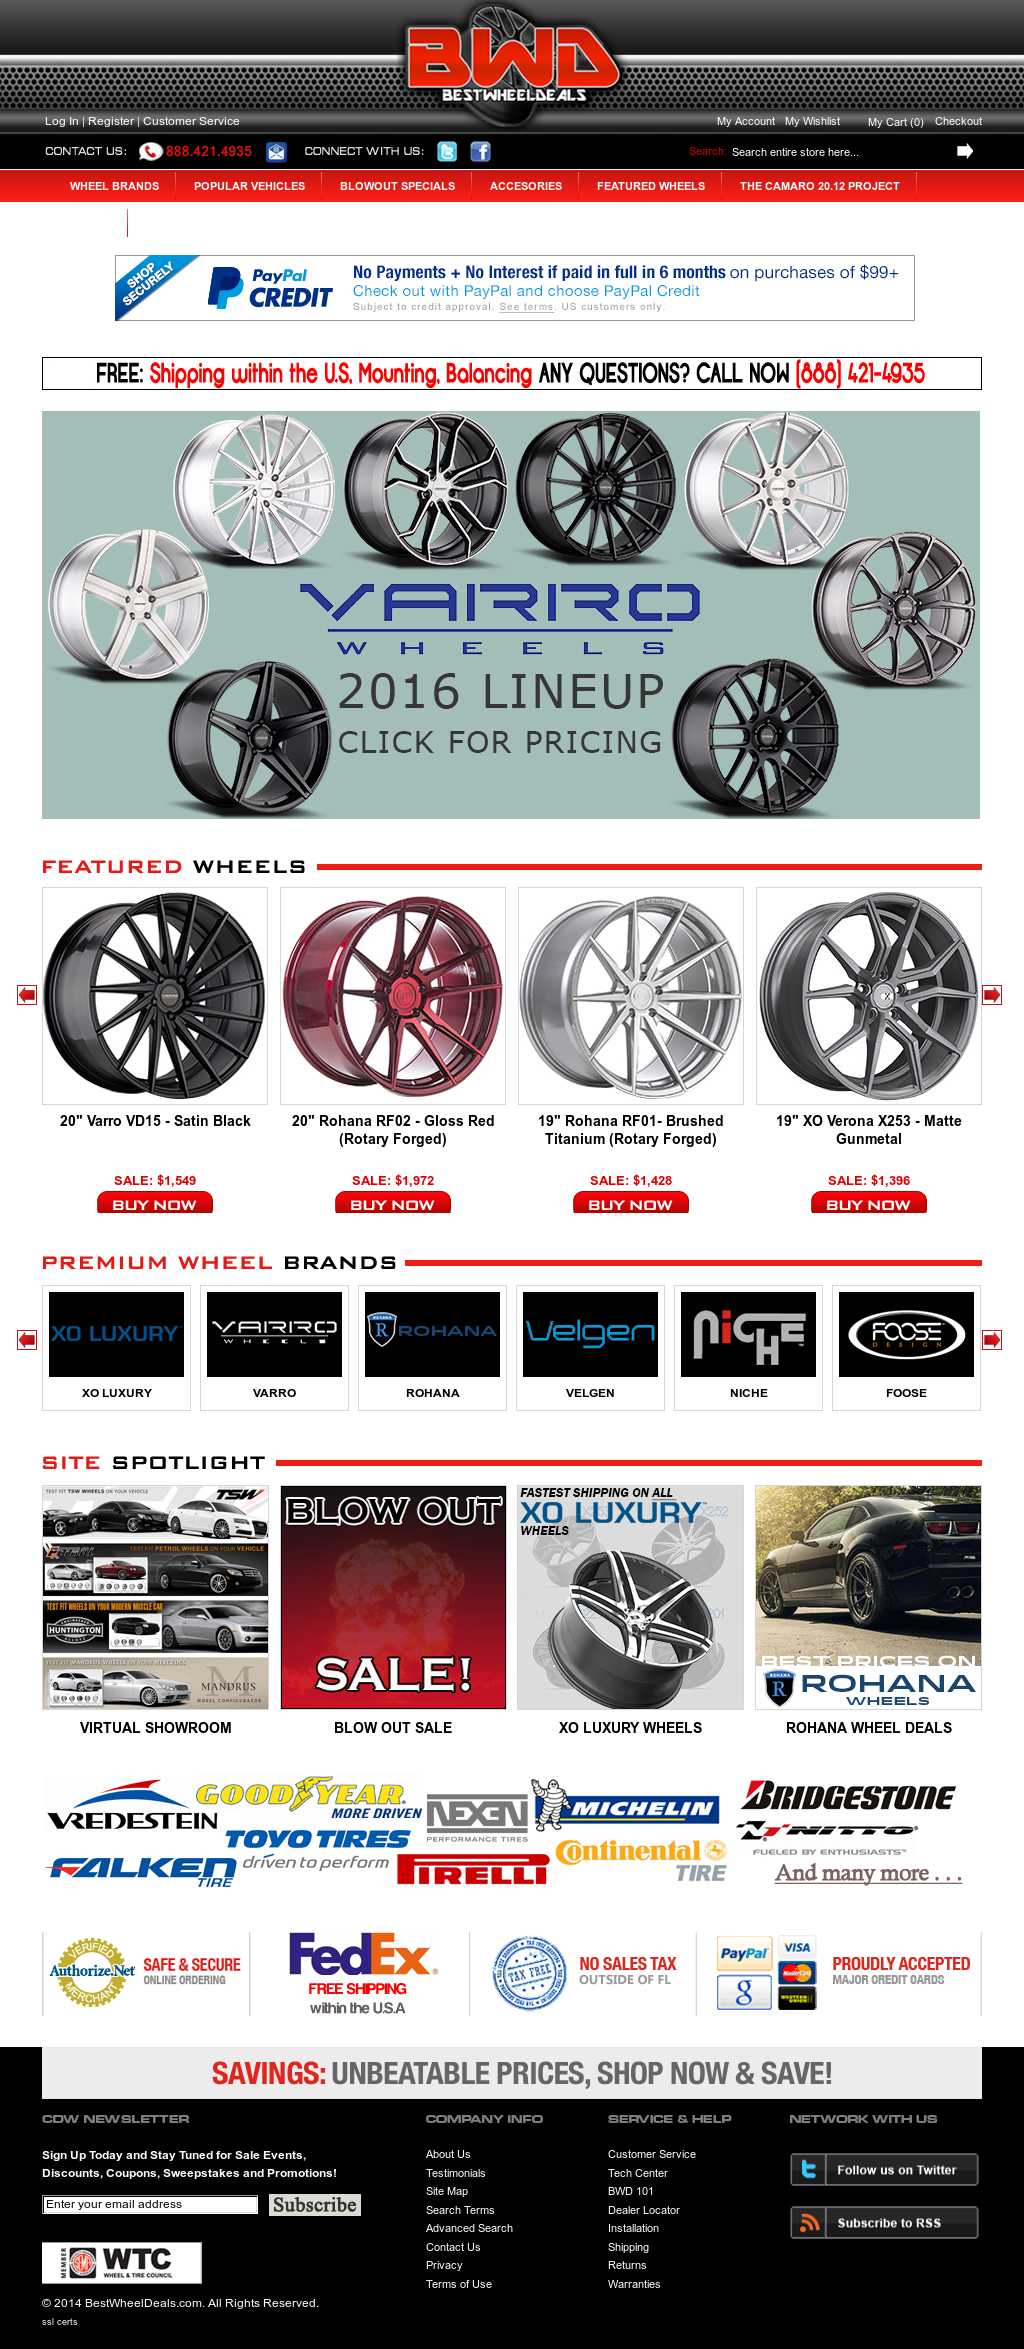 Best Wheel Deals Competitors, Revenue and Employees - Owler Company ...